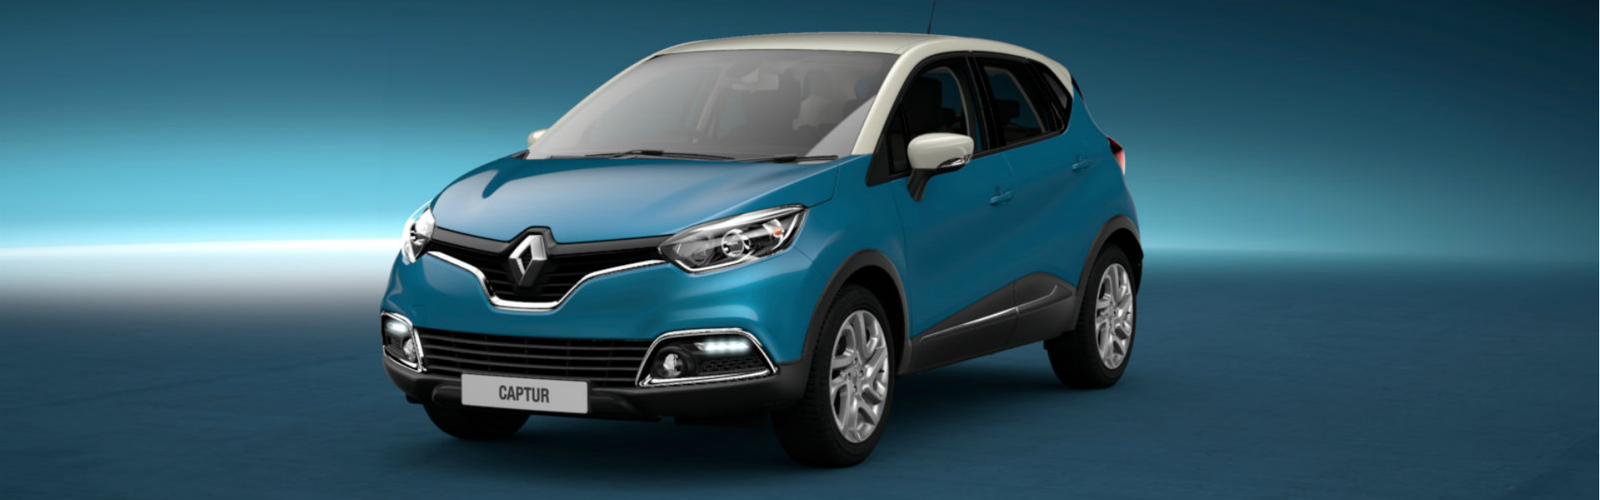 Renault Captur colours guide and paint prices | carwow